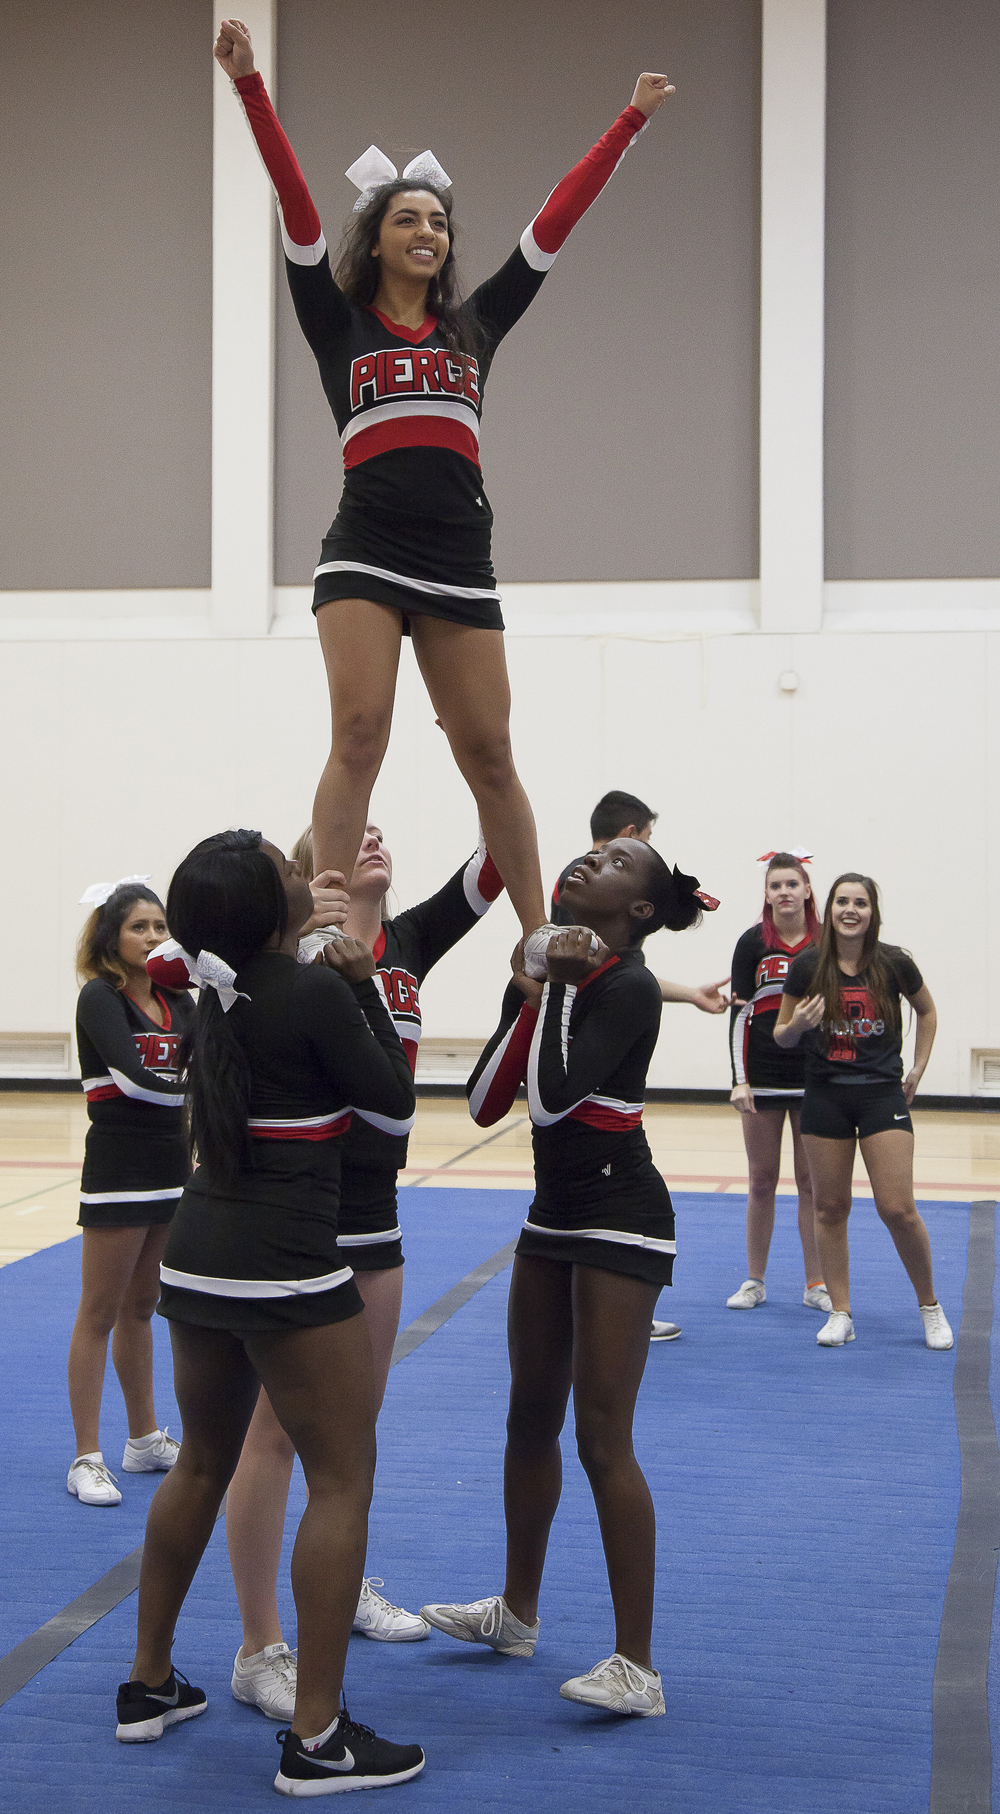 Amanda Perez, top, is lifted by fellow team members while other members watch inside the North Gym on Sunday March 1, 2015. Woodland Hills, Calif.  Read the full story here